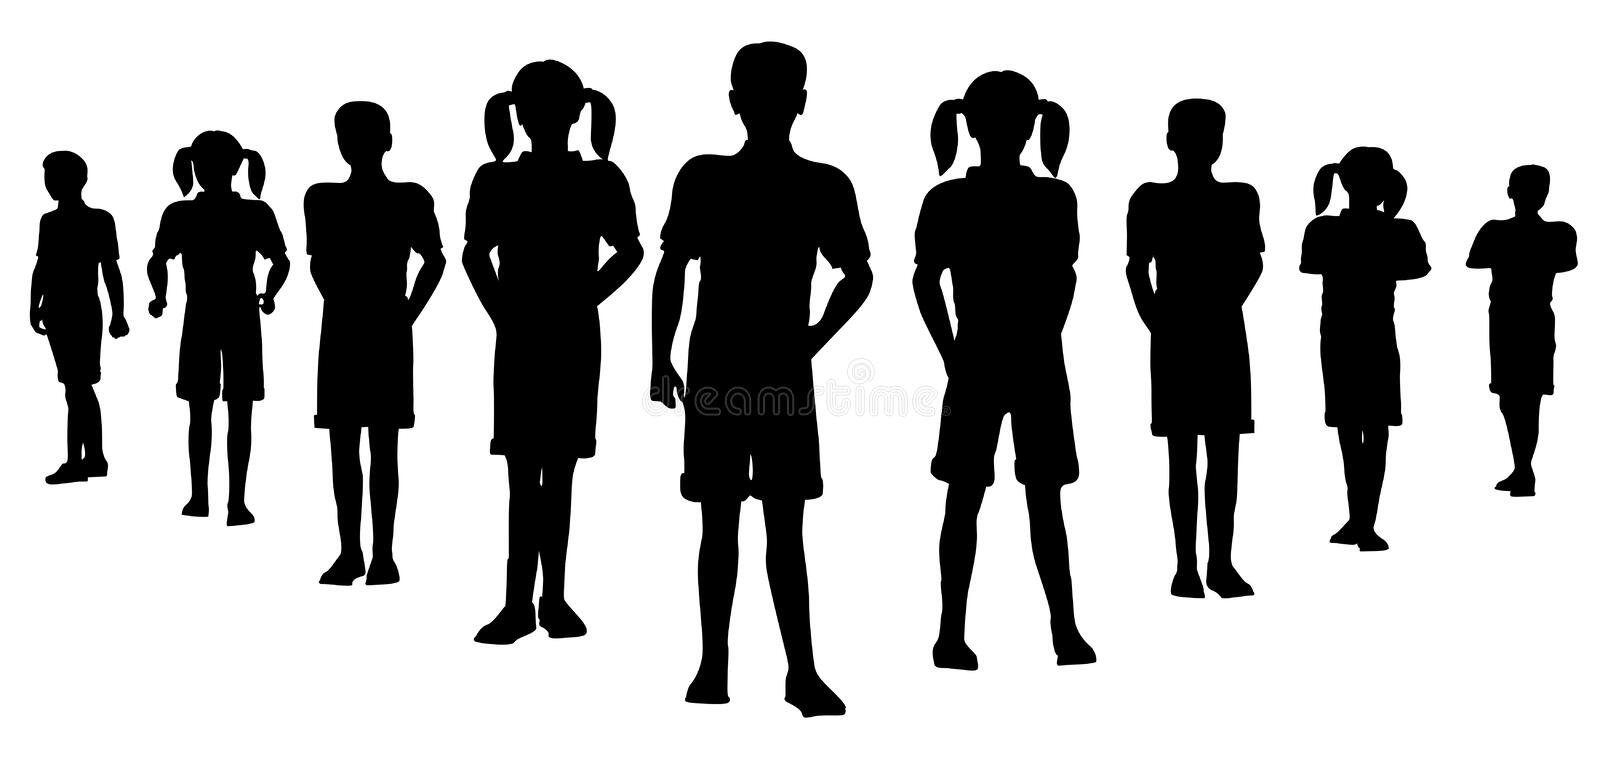 Child team silhouette stock illustration